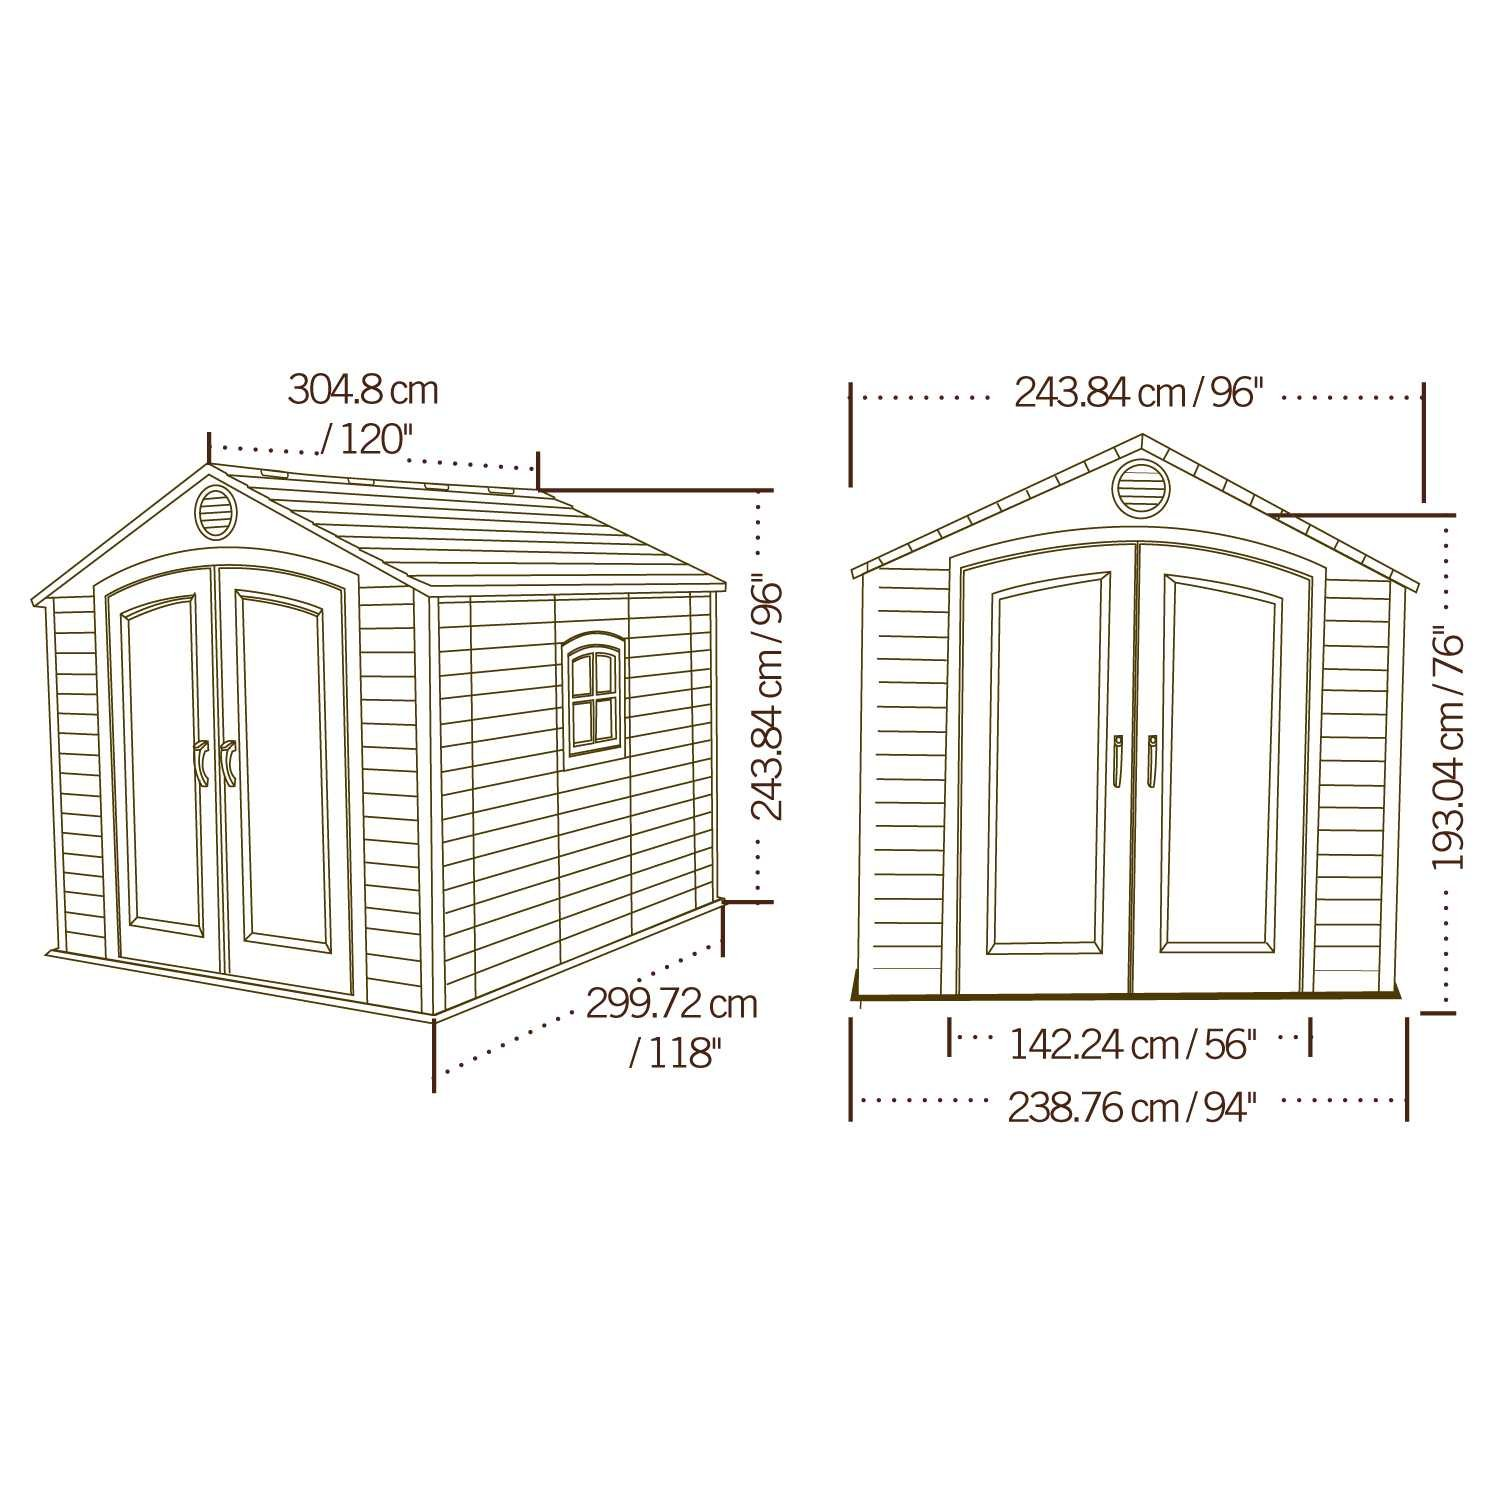 Amazon.com : Lifetime 6405 Outdoor Storage Shed With Window, Skylights, And  Shelving, 8 By 10 Feet : Garden Shed : Garden U0026 Outdoor